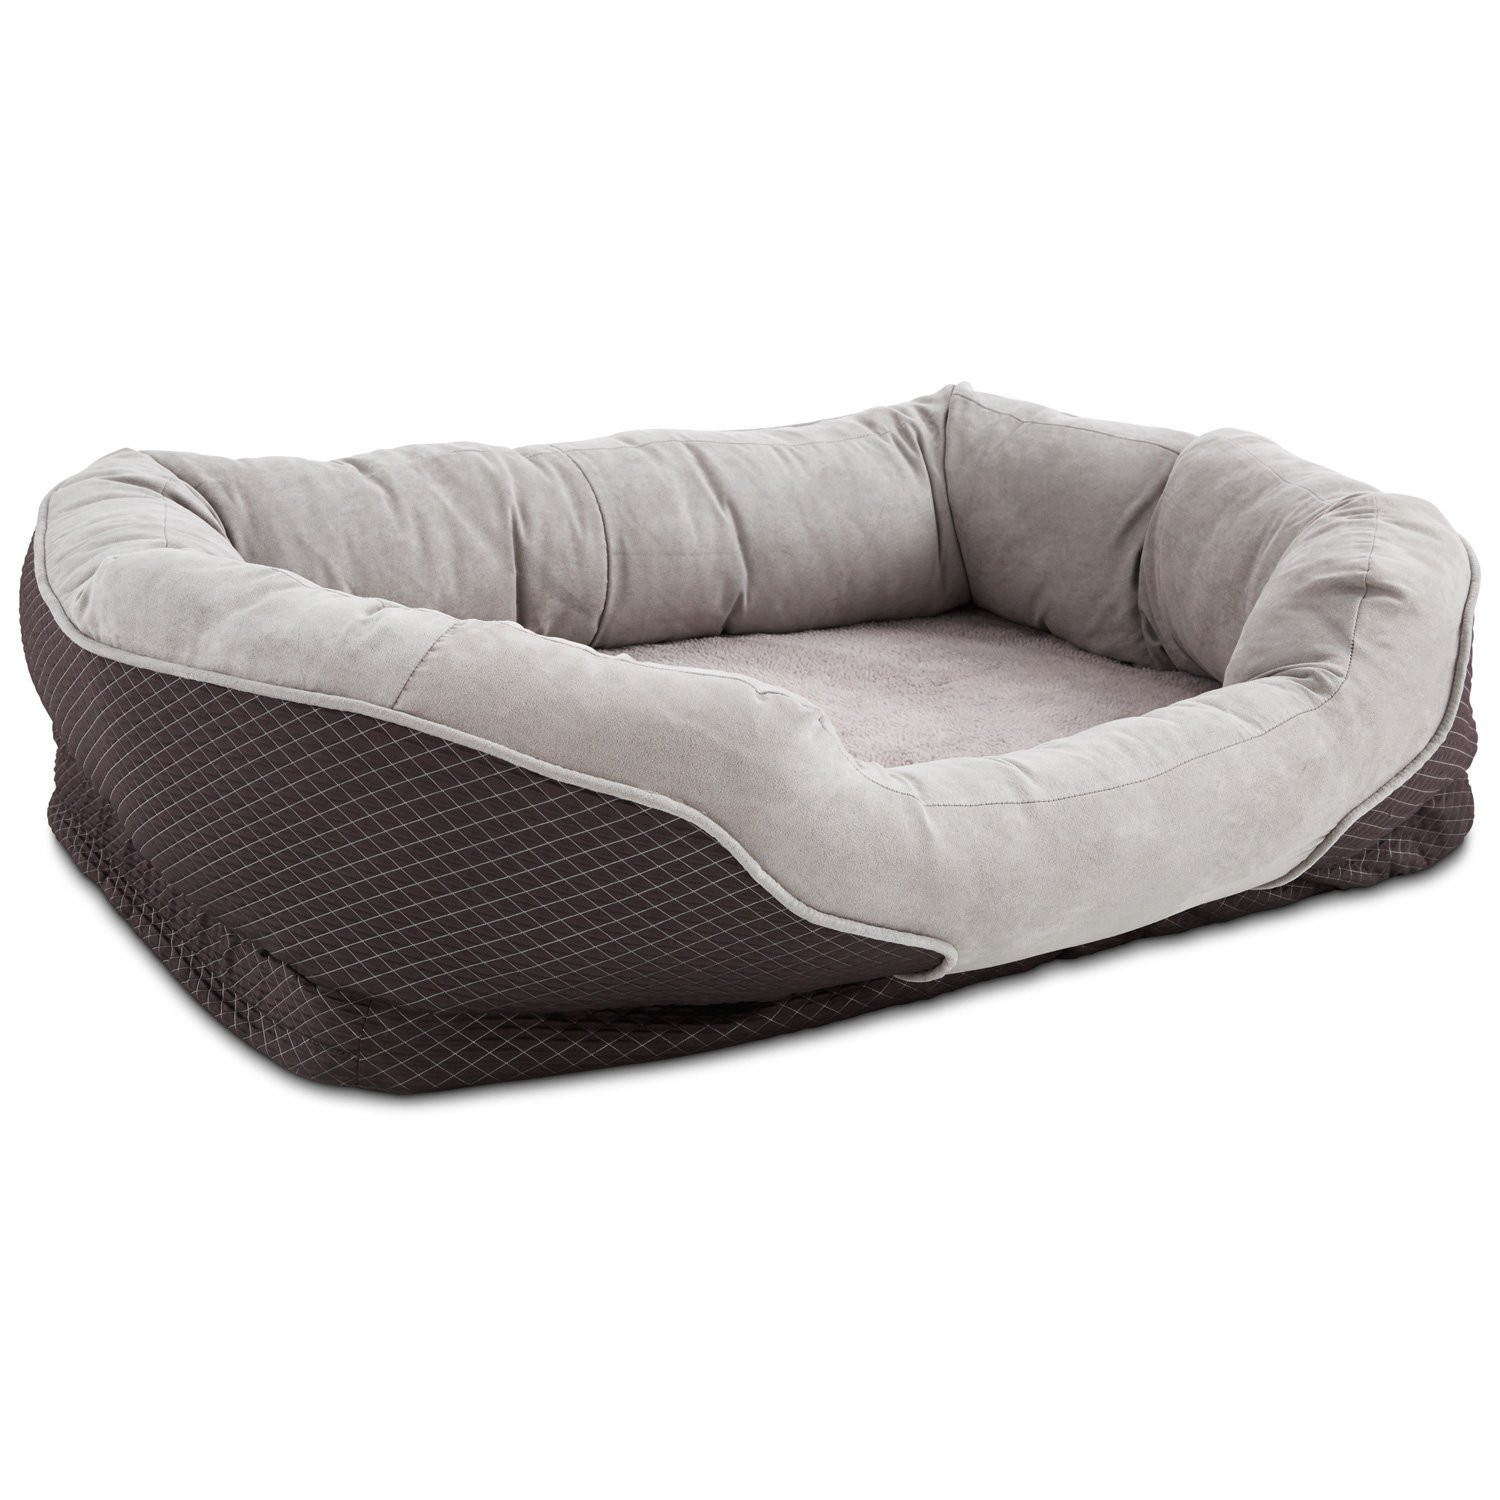 orthopedic peaceful nester gray dog bed - Dog Beds For Large Dogs